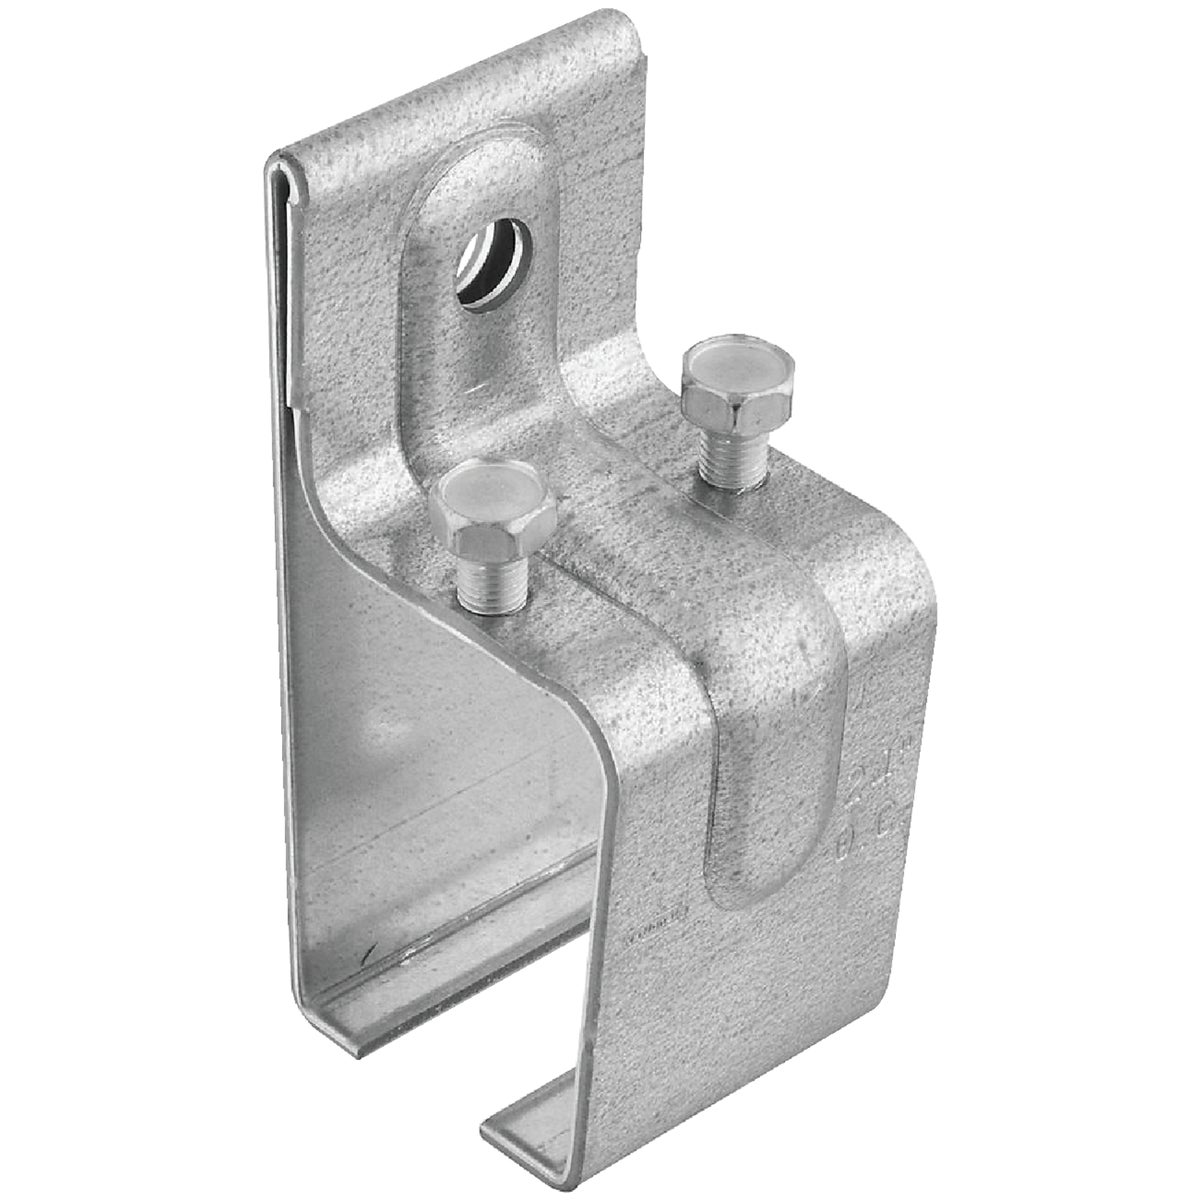 SGL JNT SPLICE BRACKET - N104380 by National Mfg Co